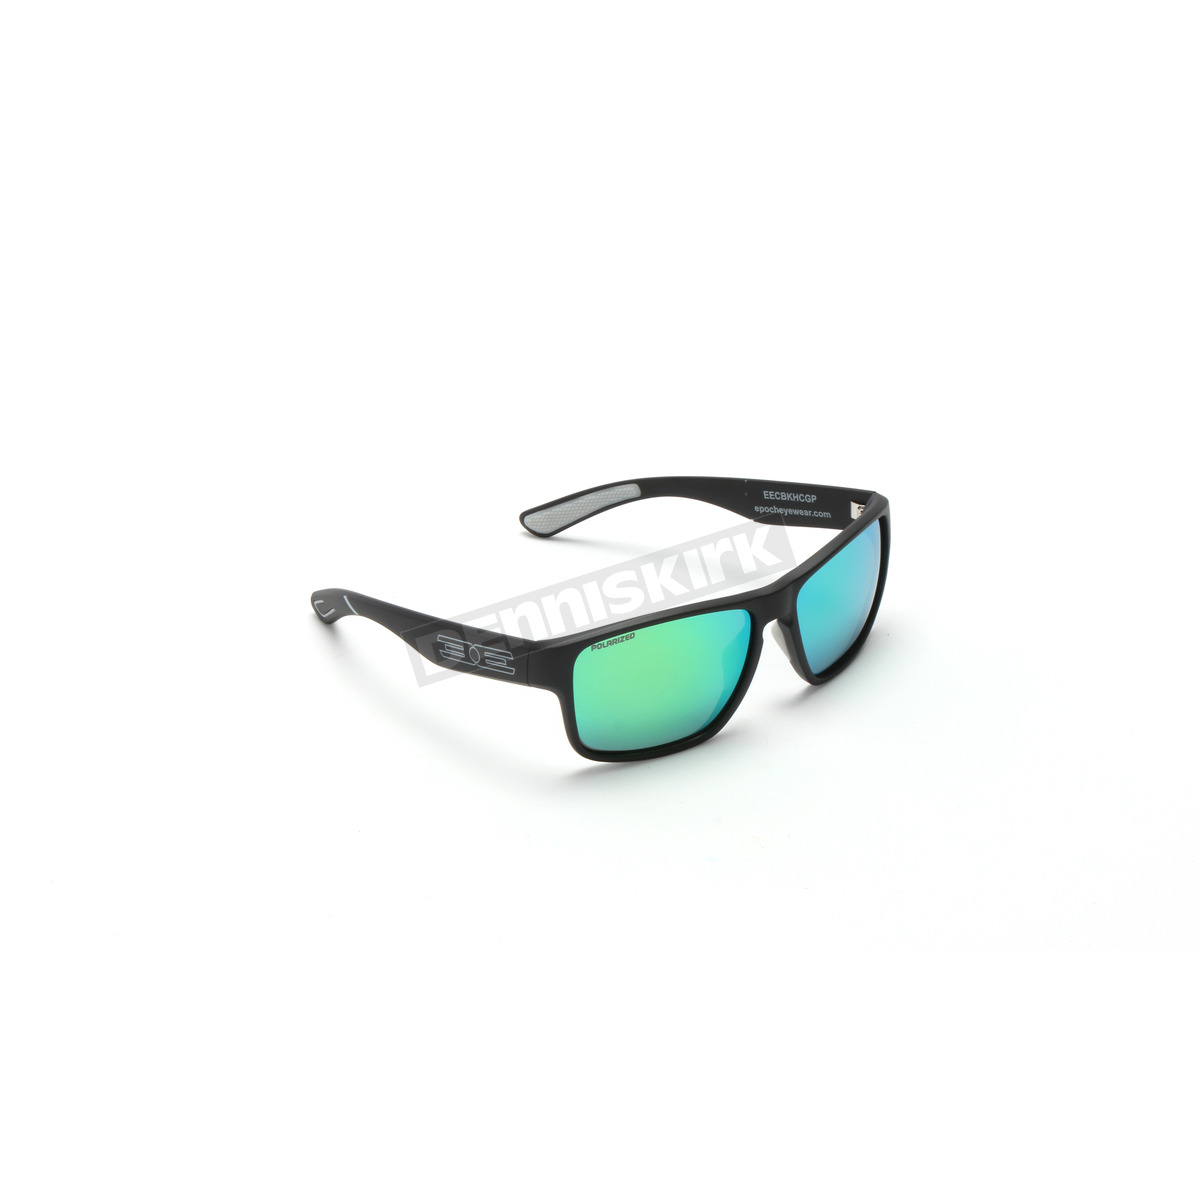 5c92d001e03 Epoch Eyewear Matte Black Charlie Sunglasses w Green Mirror Polarized Lens  - EE5943